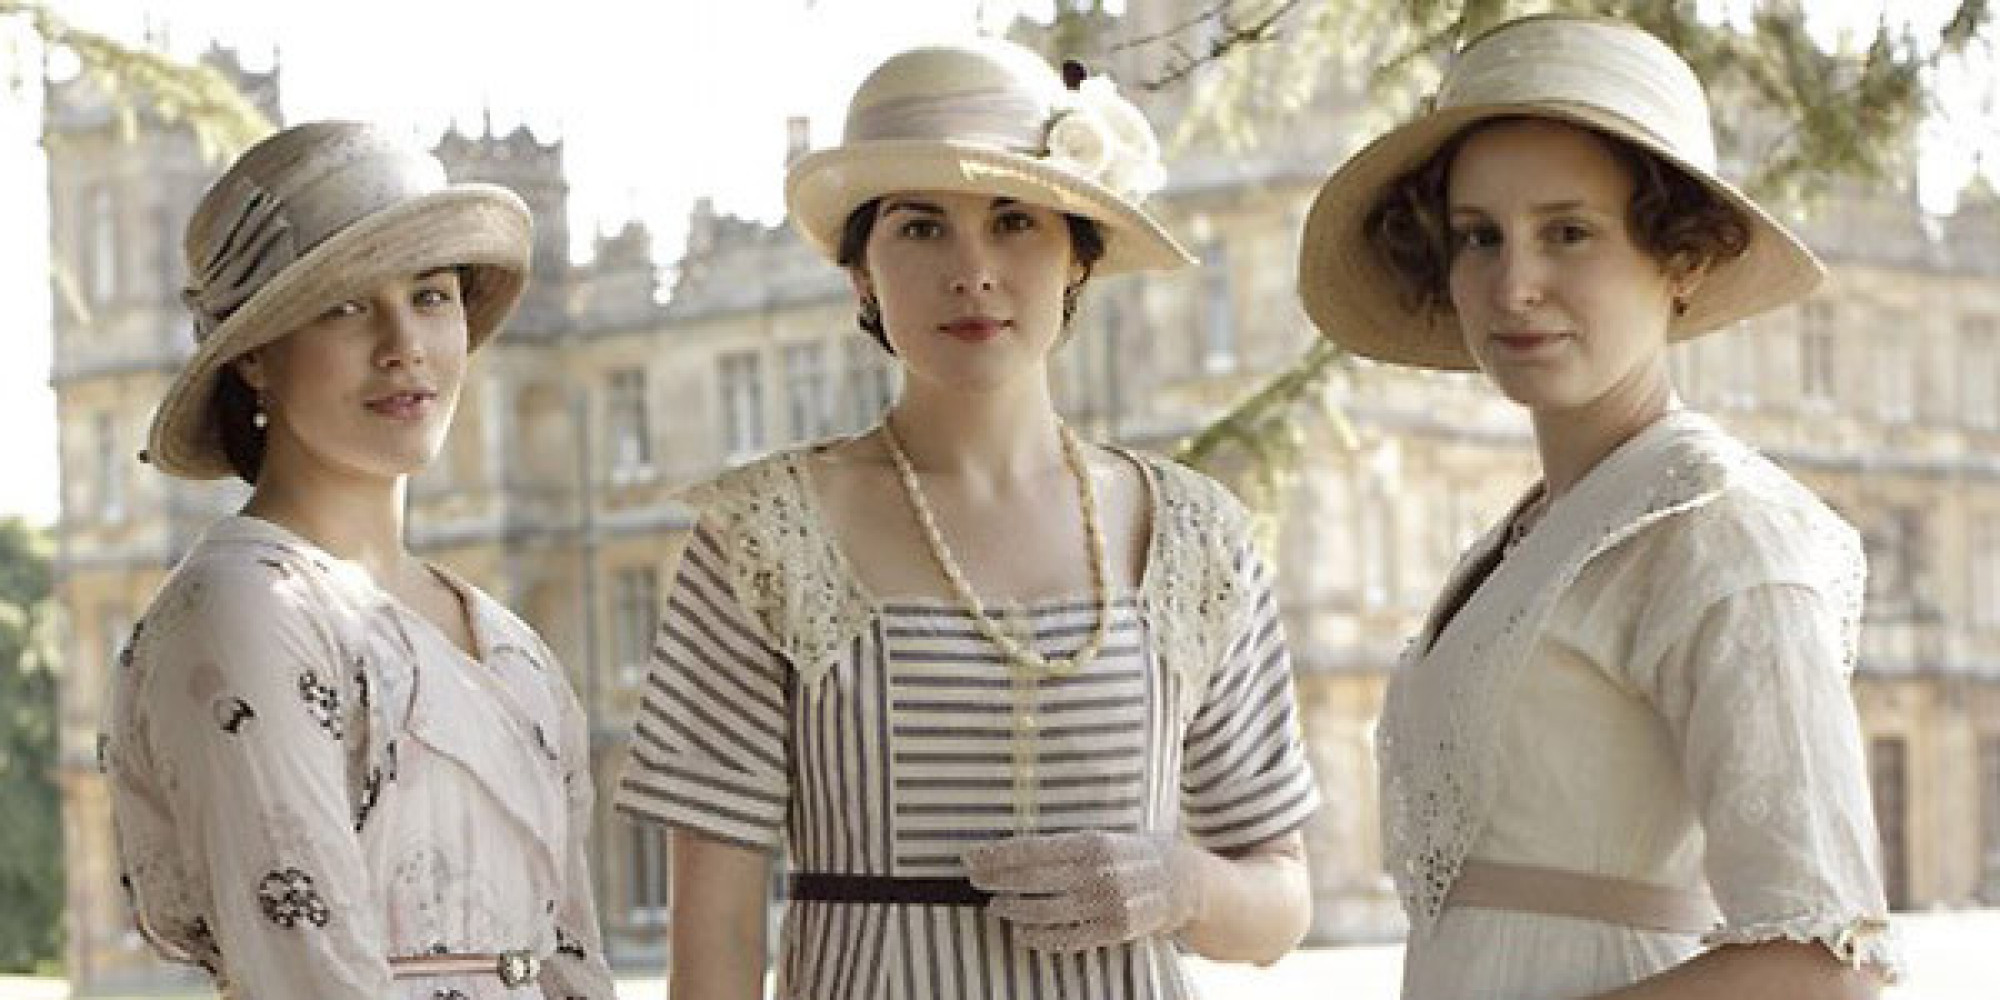 downton abbey characters dating in real life Highclere castle, the real-life downton abbey a double-sized space stocked with more 5,650 books dating back to the 16th century.